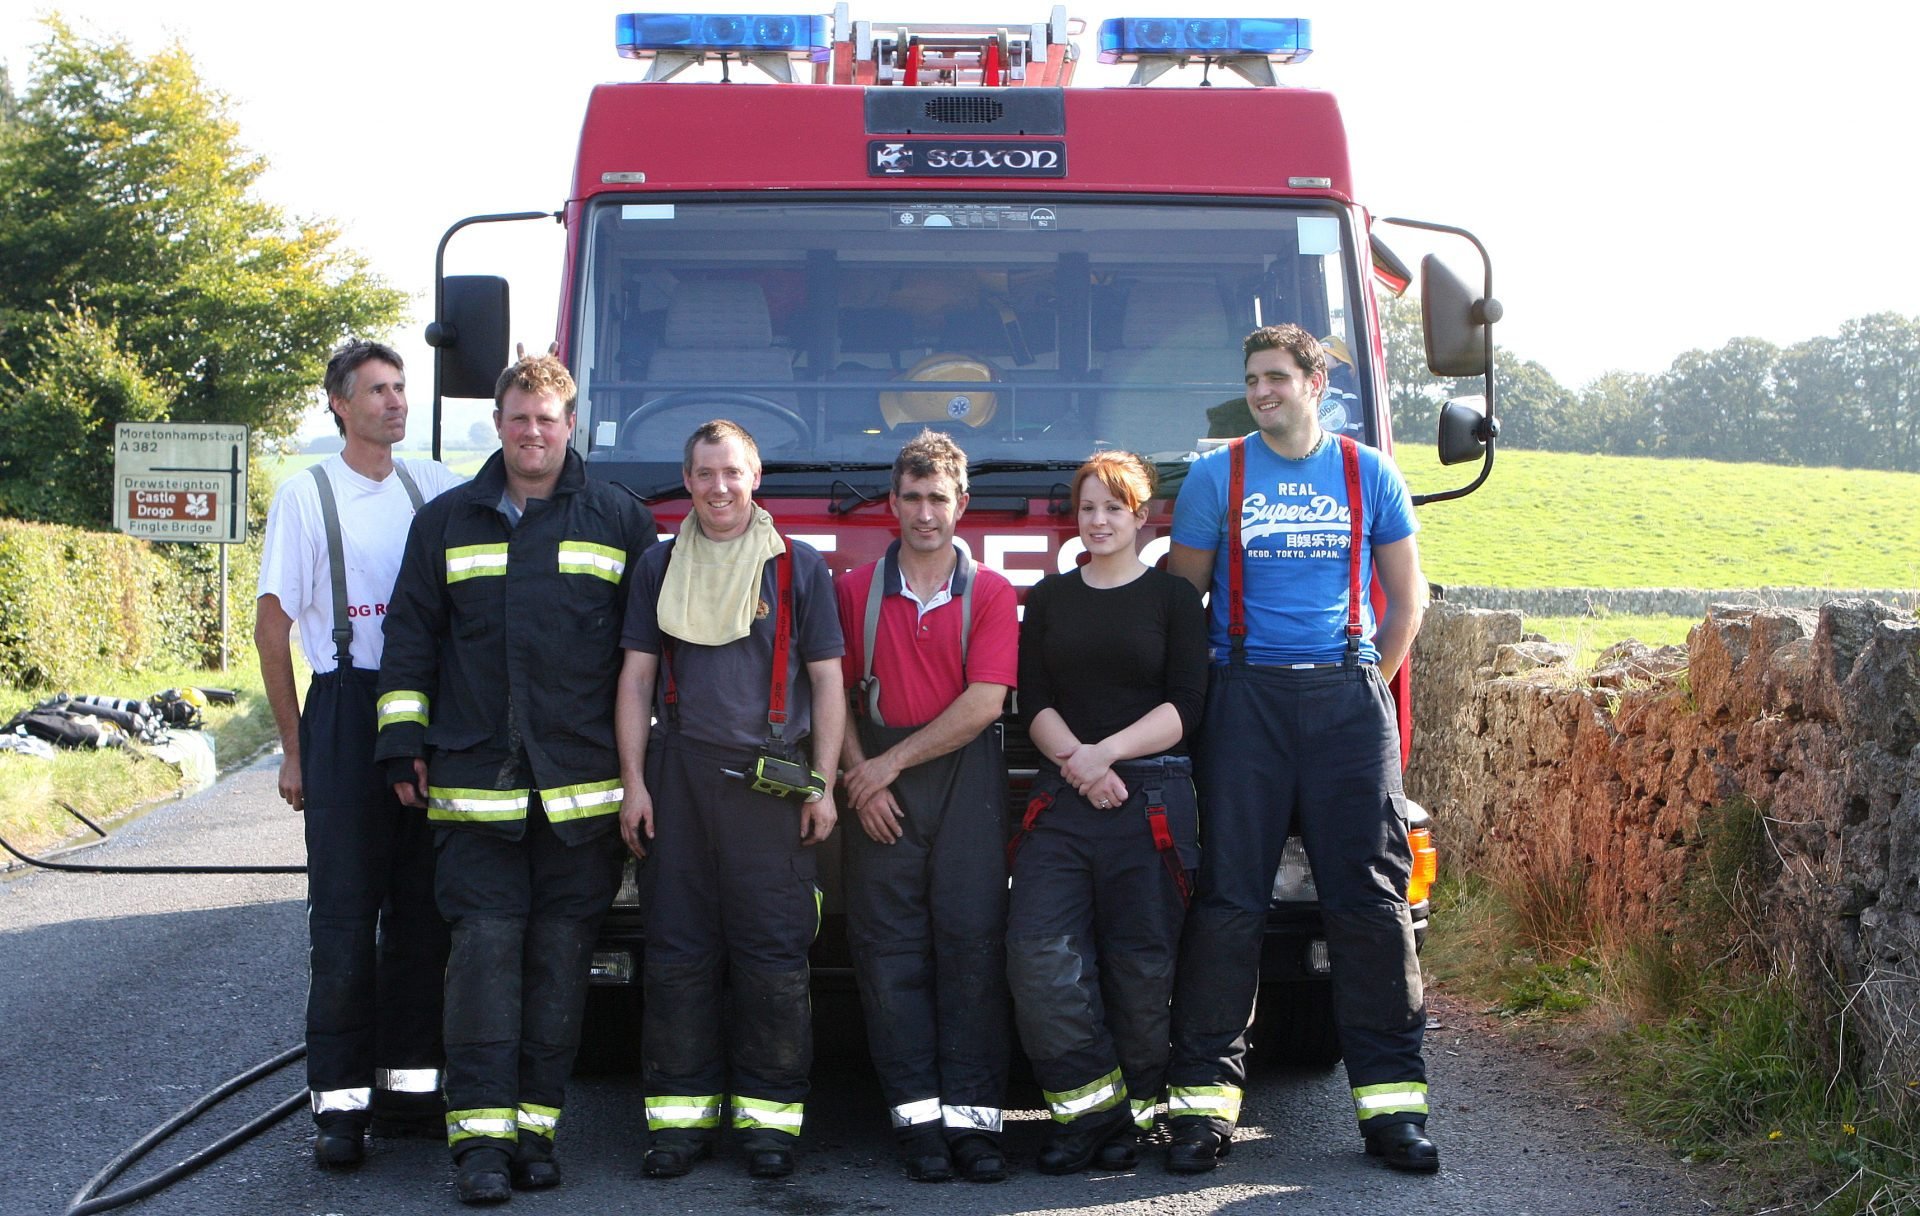 Chagford Fire Crew after tending to the lorry fire. Plenty of exploding rice pudding tins !